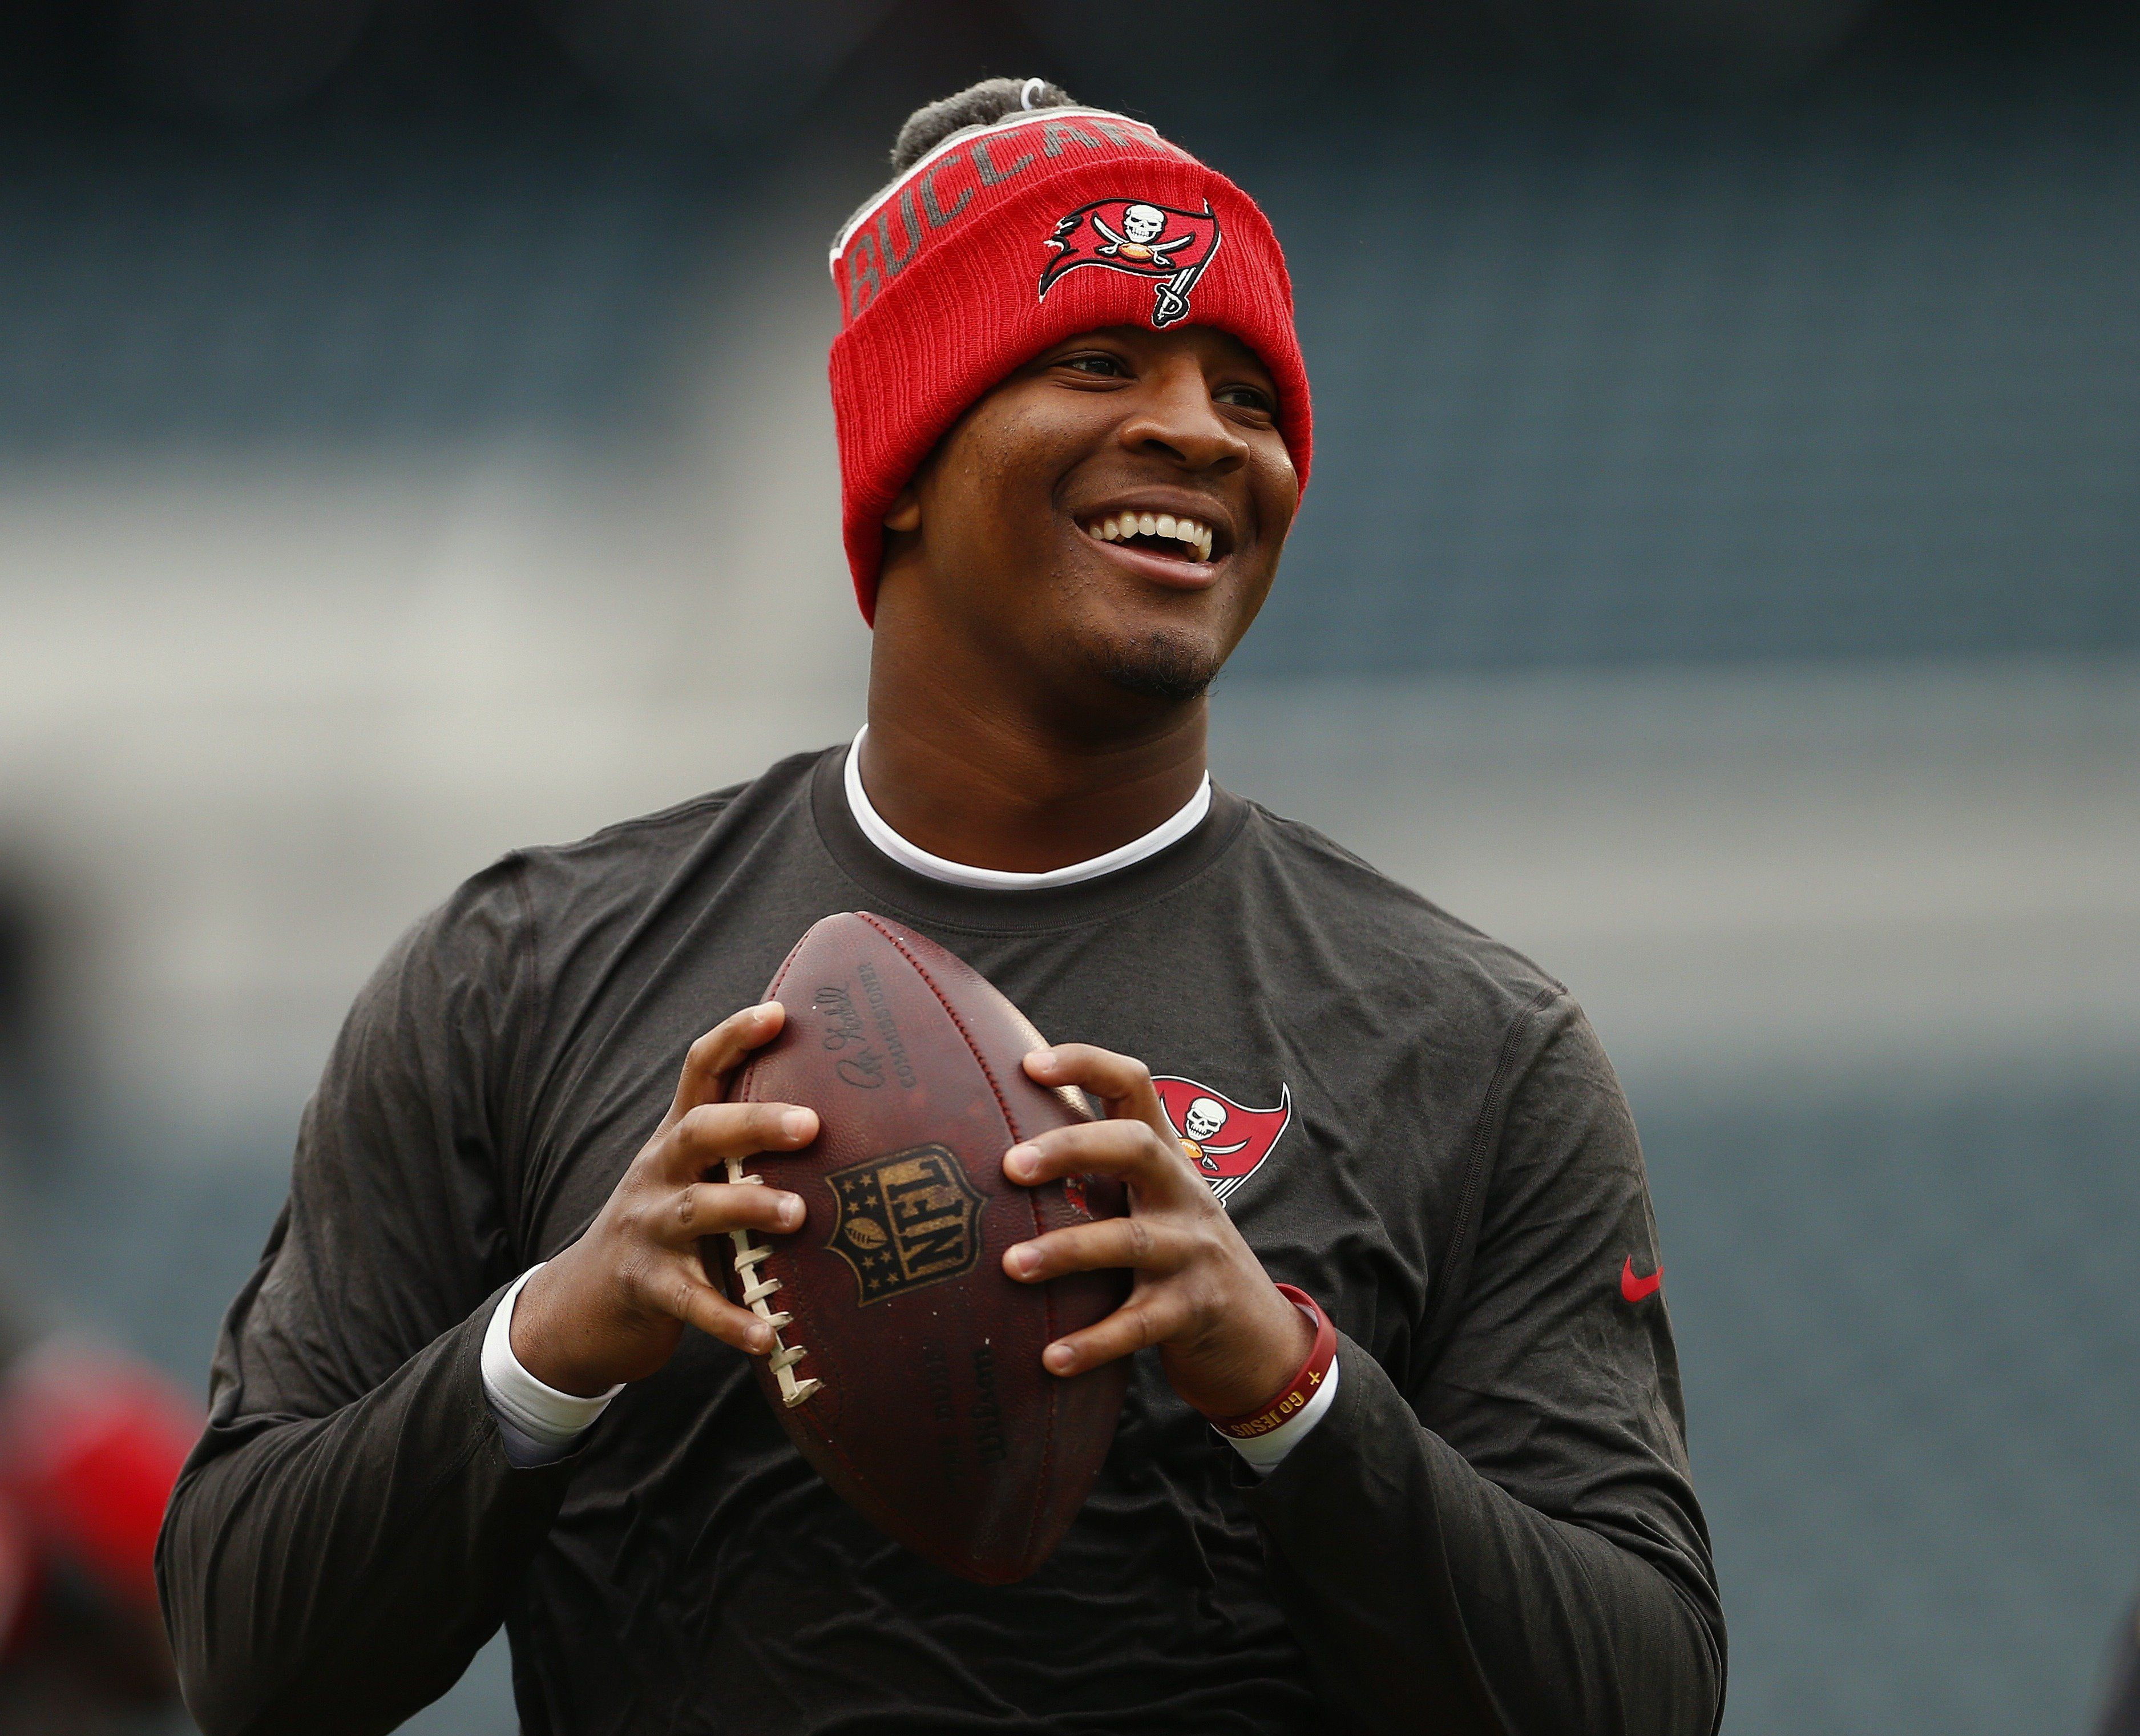 PHILADELPHIA, PA - NOVEMBER 22: Quarterback Jameis Winston #3 of the Tampa Bay Buccaneers warms up before a game against the Philadelphia Eagles at Lincoln Financial Field on November 22, 2015 in Philadelphia, Pennsylvania. (Photo by Rich Schultz /Getty Images)